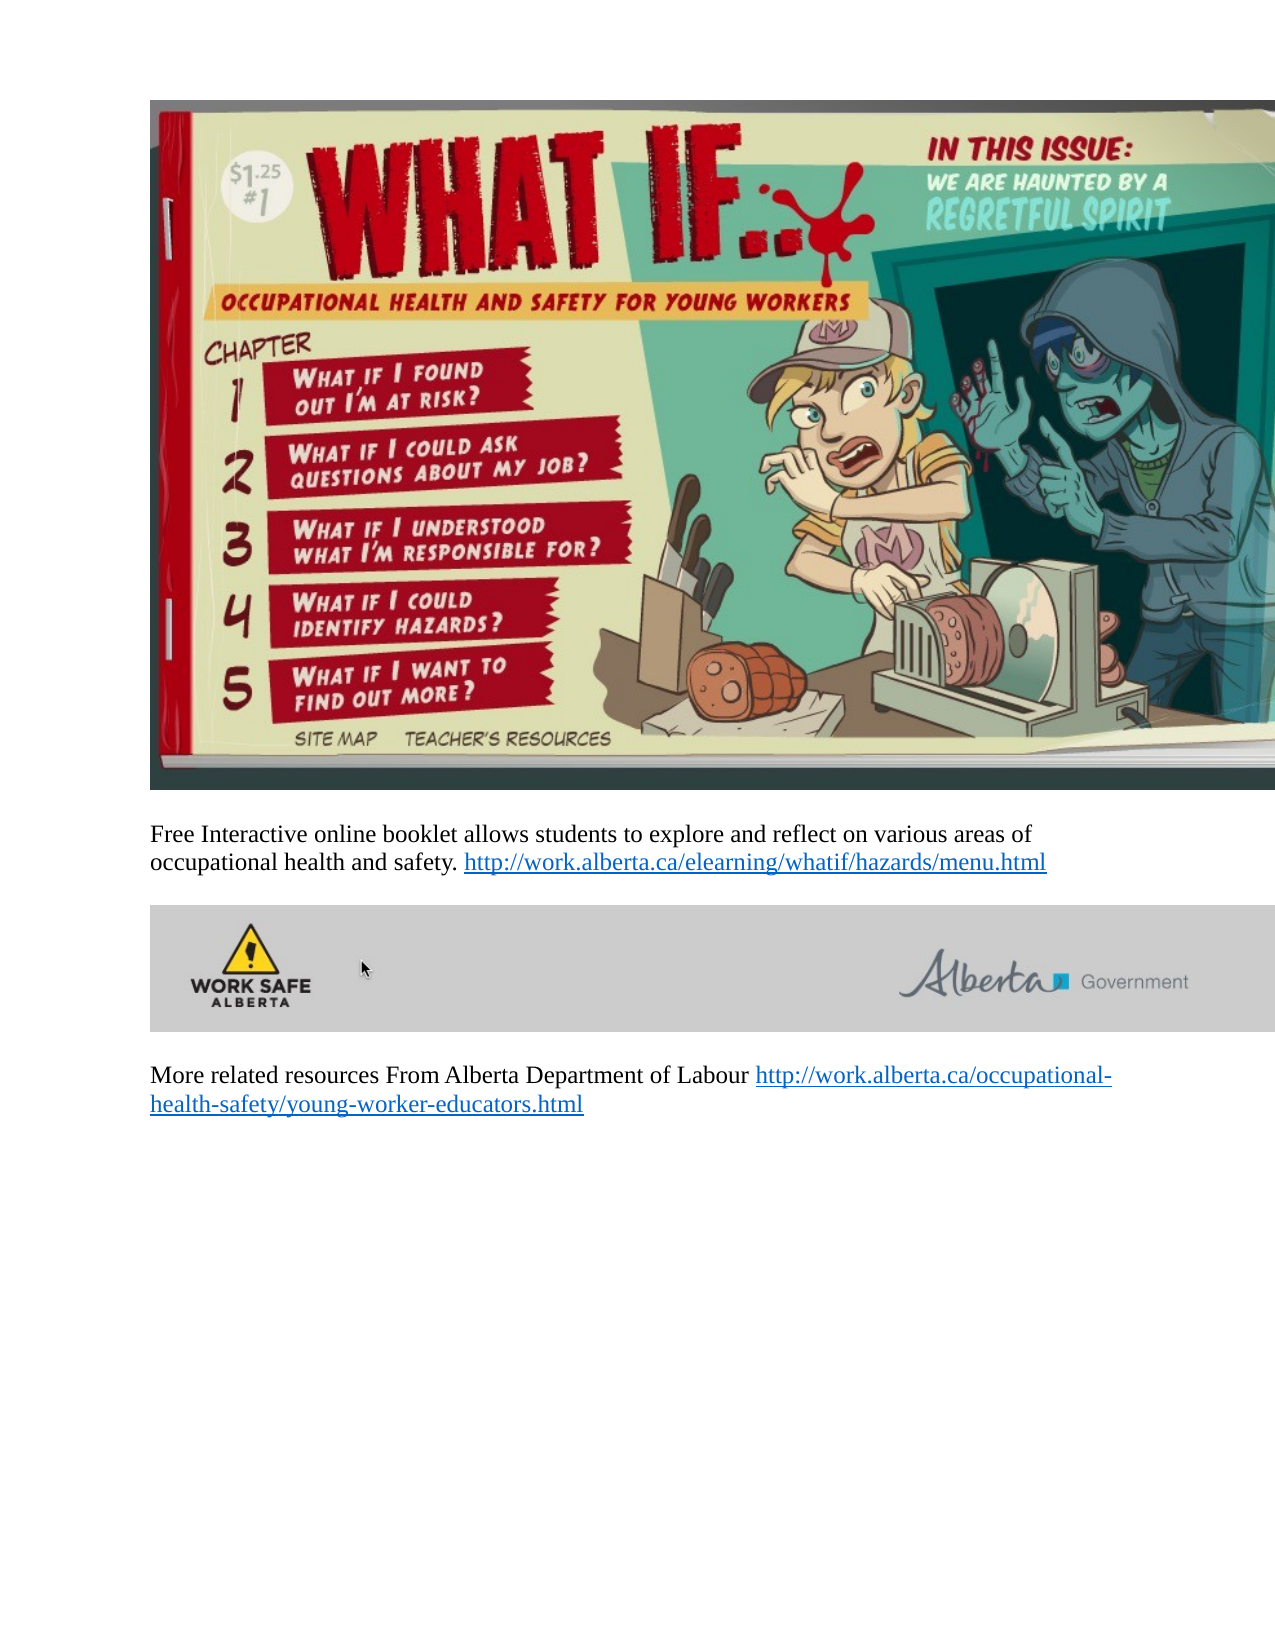 Free Interactive online booklet from AB Dept of Labour on